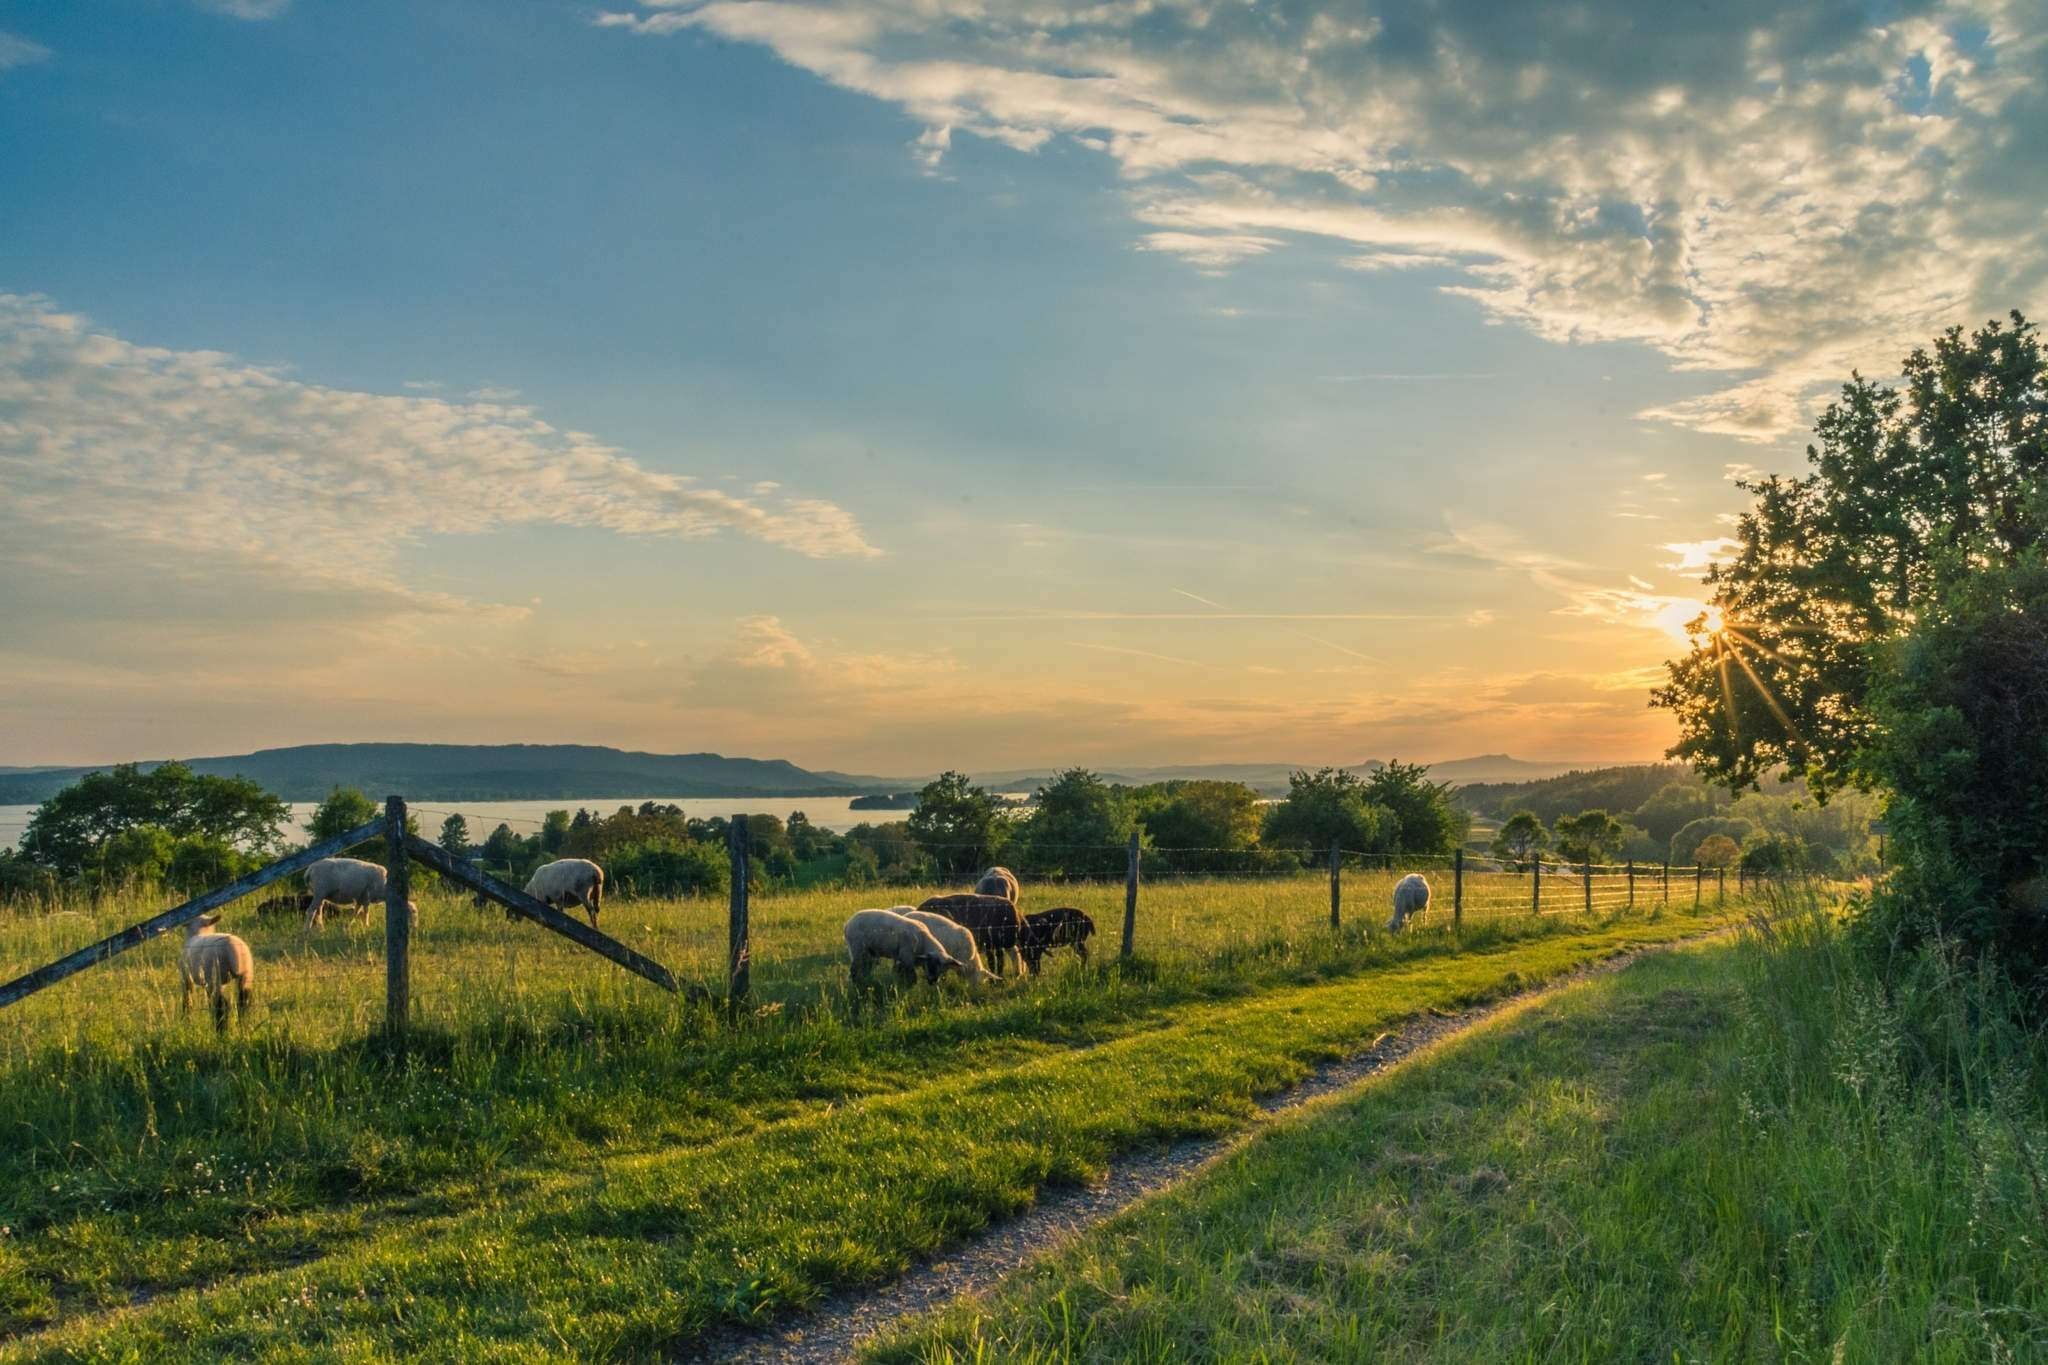 Countryside Cropland Dawn Dusk Farm Fence Field Grass Landscape Meadow Outdoors Pasture Path Rural Sheep Sunrise Sunset Trees Wallpaper Farm Pictures Beautiful Scenery Pictures Landscape Photography